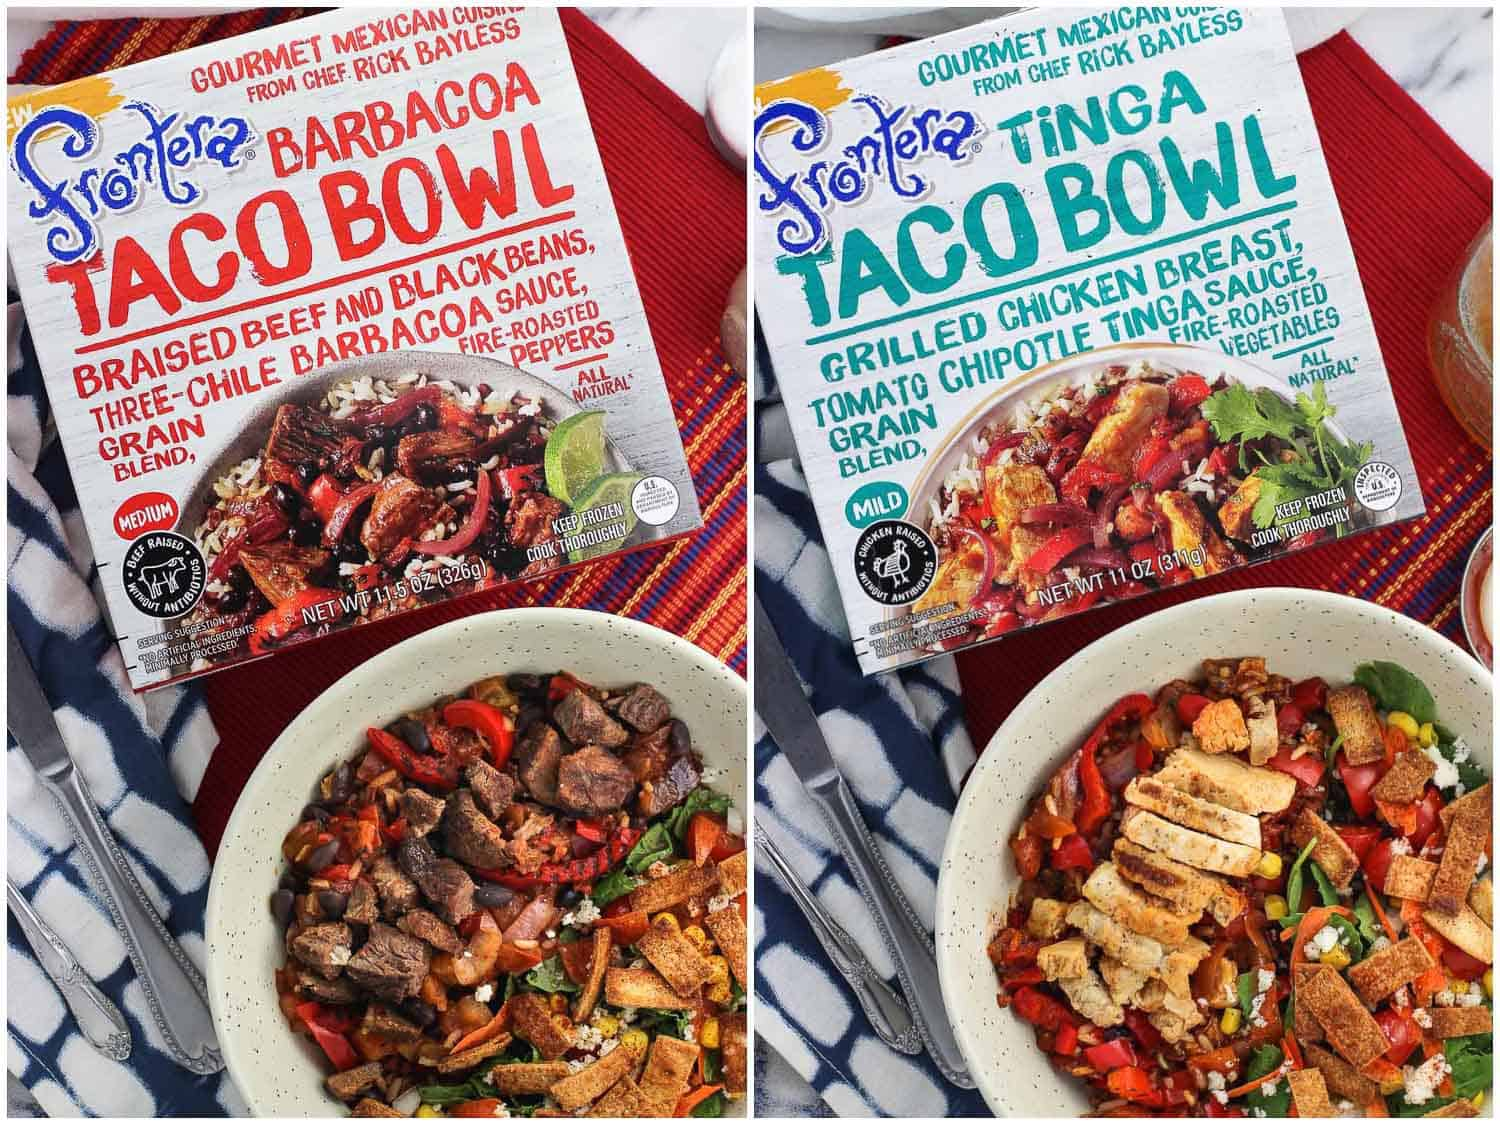 A side-by-side image of two Frontera meals and boxes: barbacoa taco bowl (left) and tinga taco bowl (right)